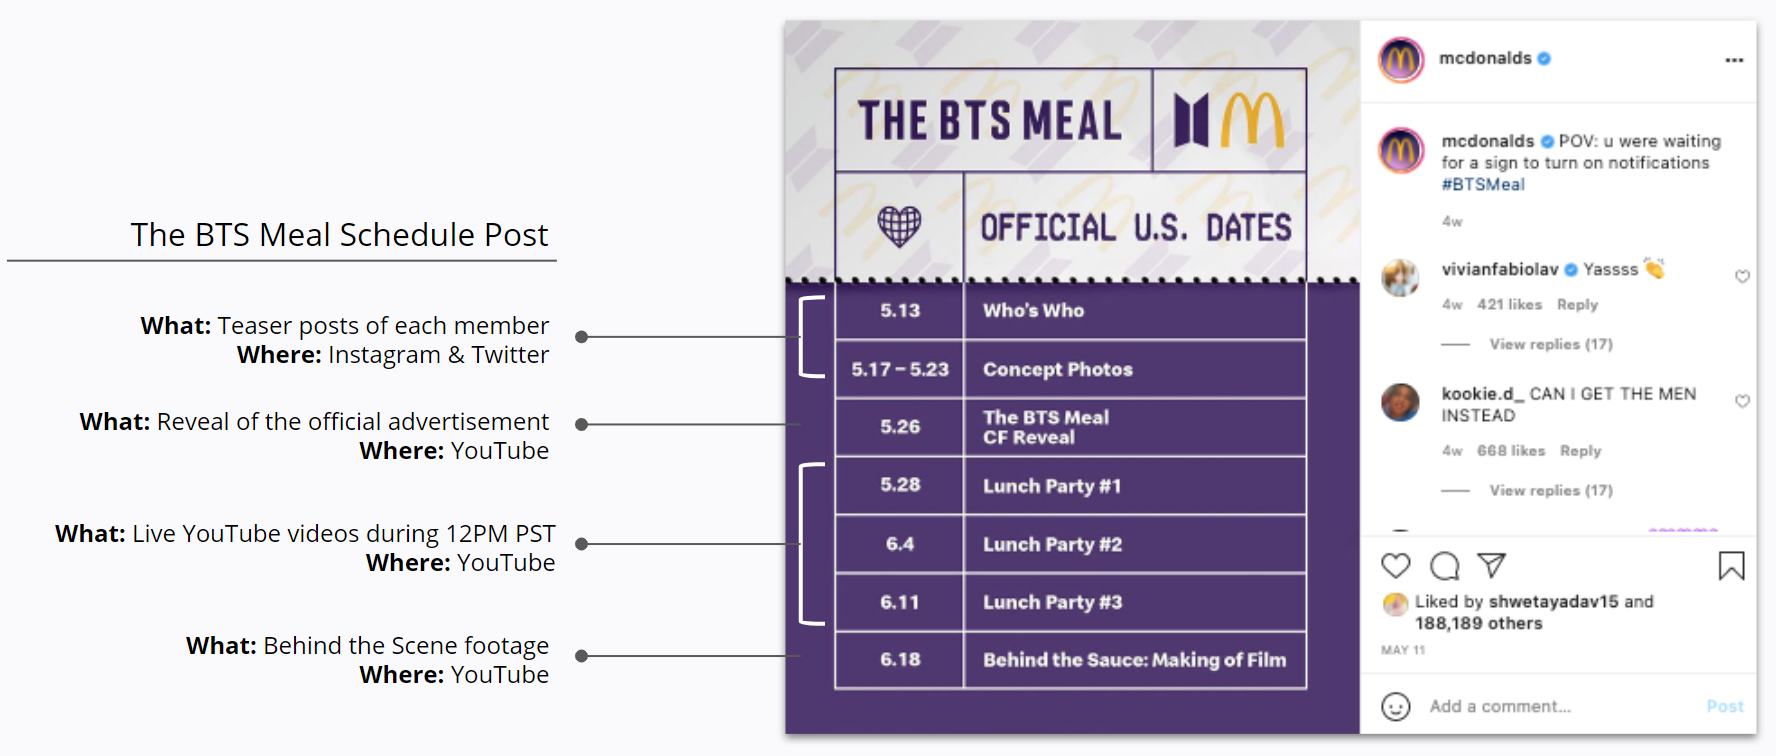 McDonalds - The BTS Meal